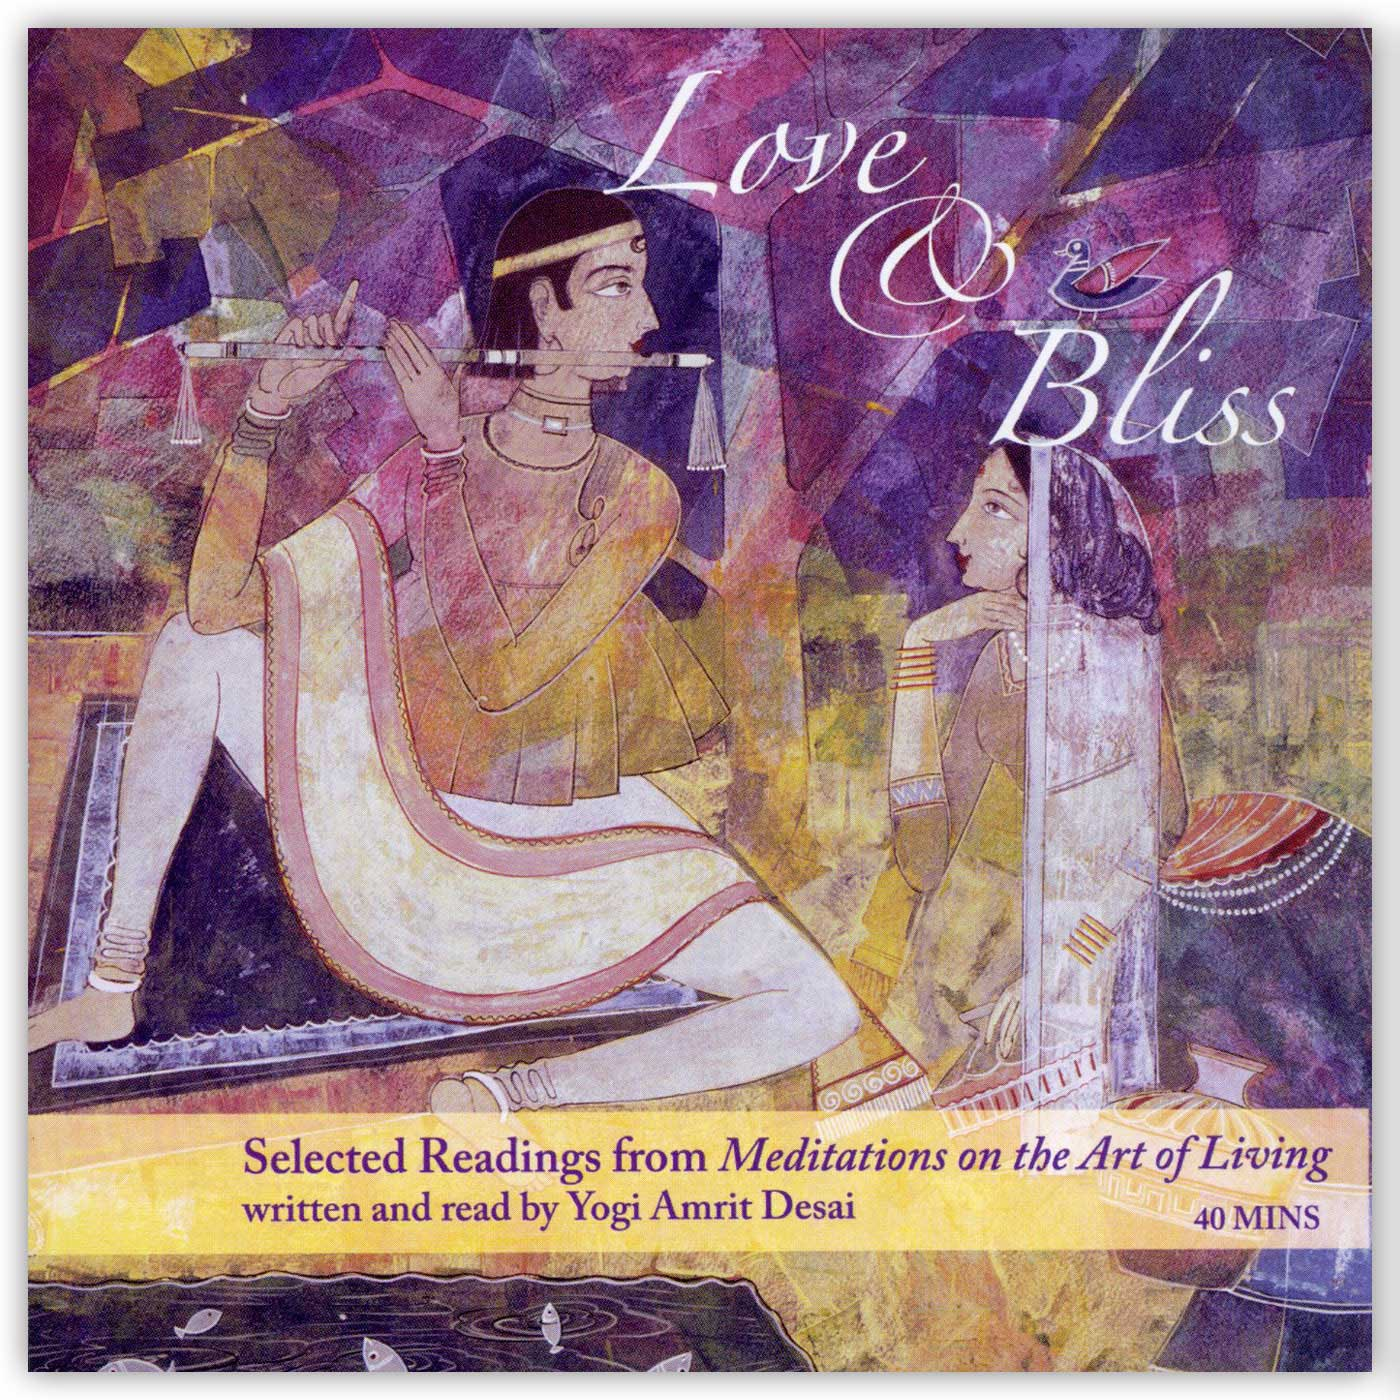 Love and Bliss: Inspirational Poetry with Yogi Amrit Desai